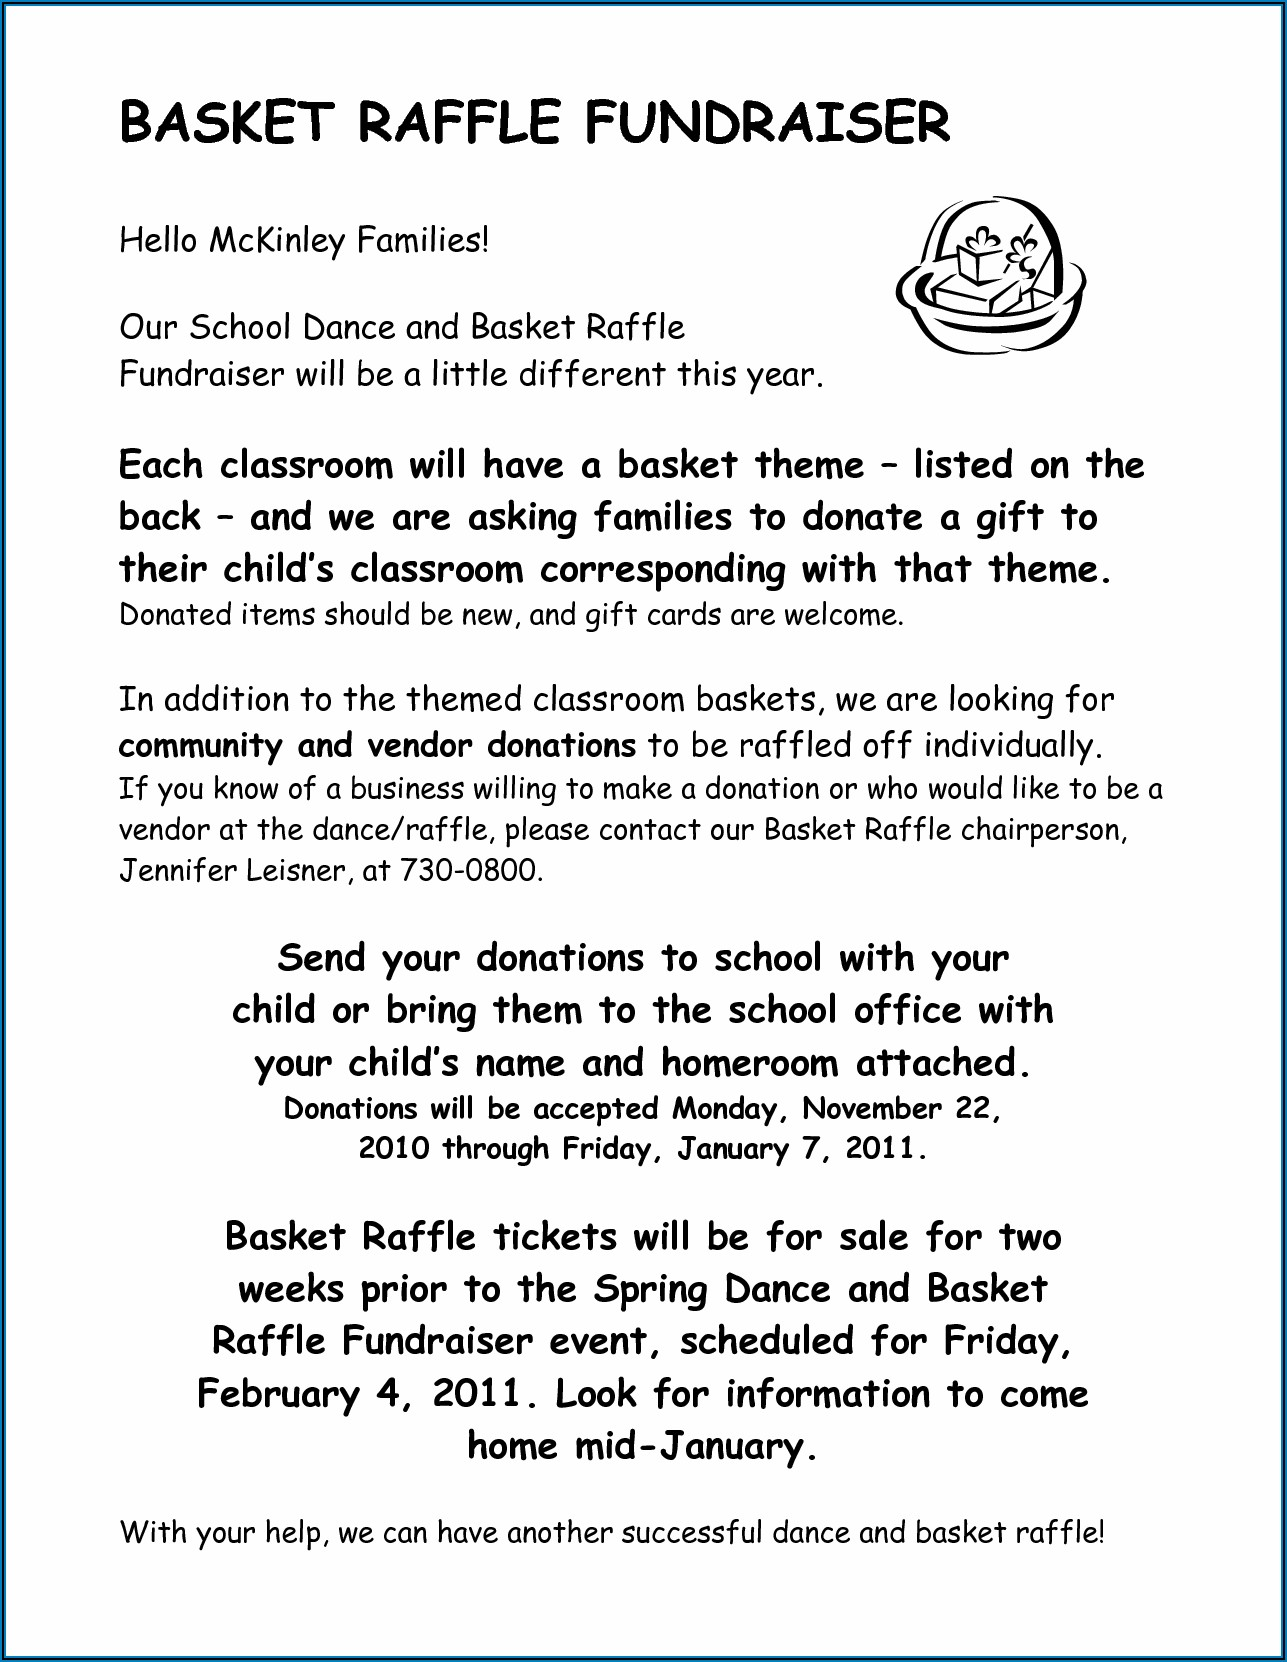 Template Letter Asking For Raffle Donations